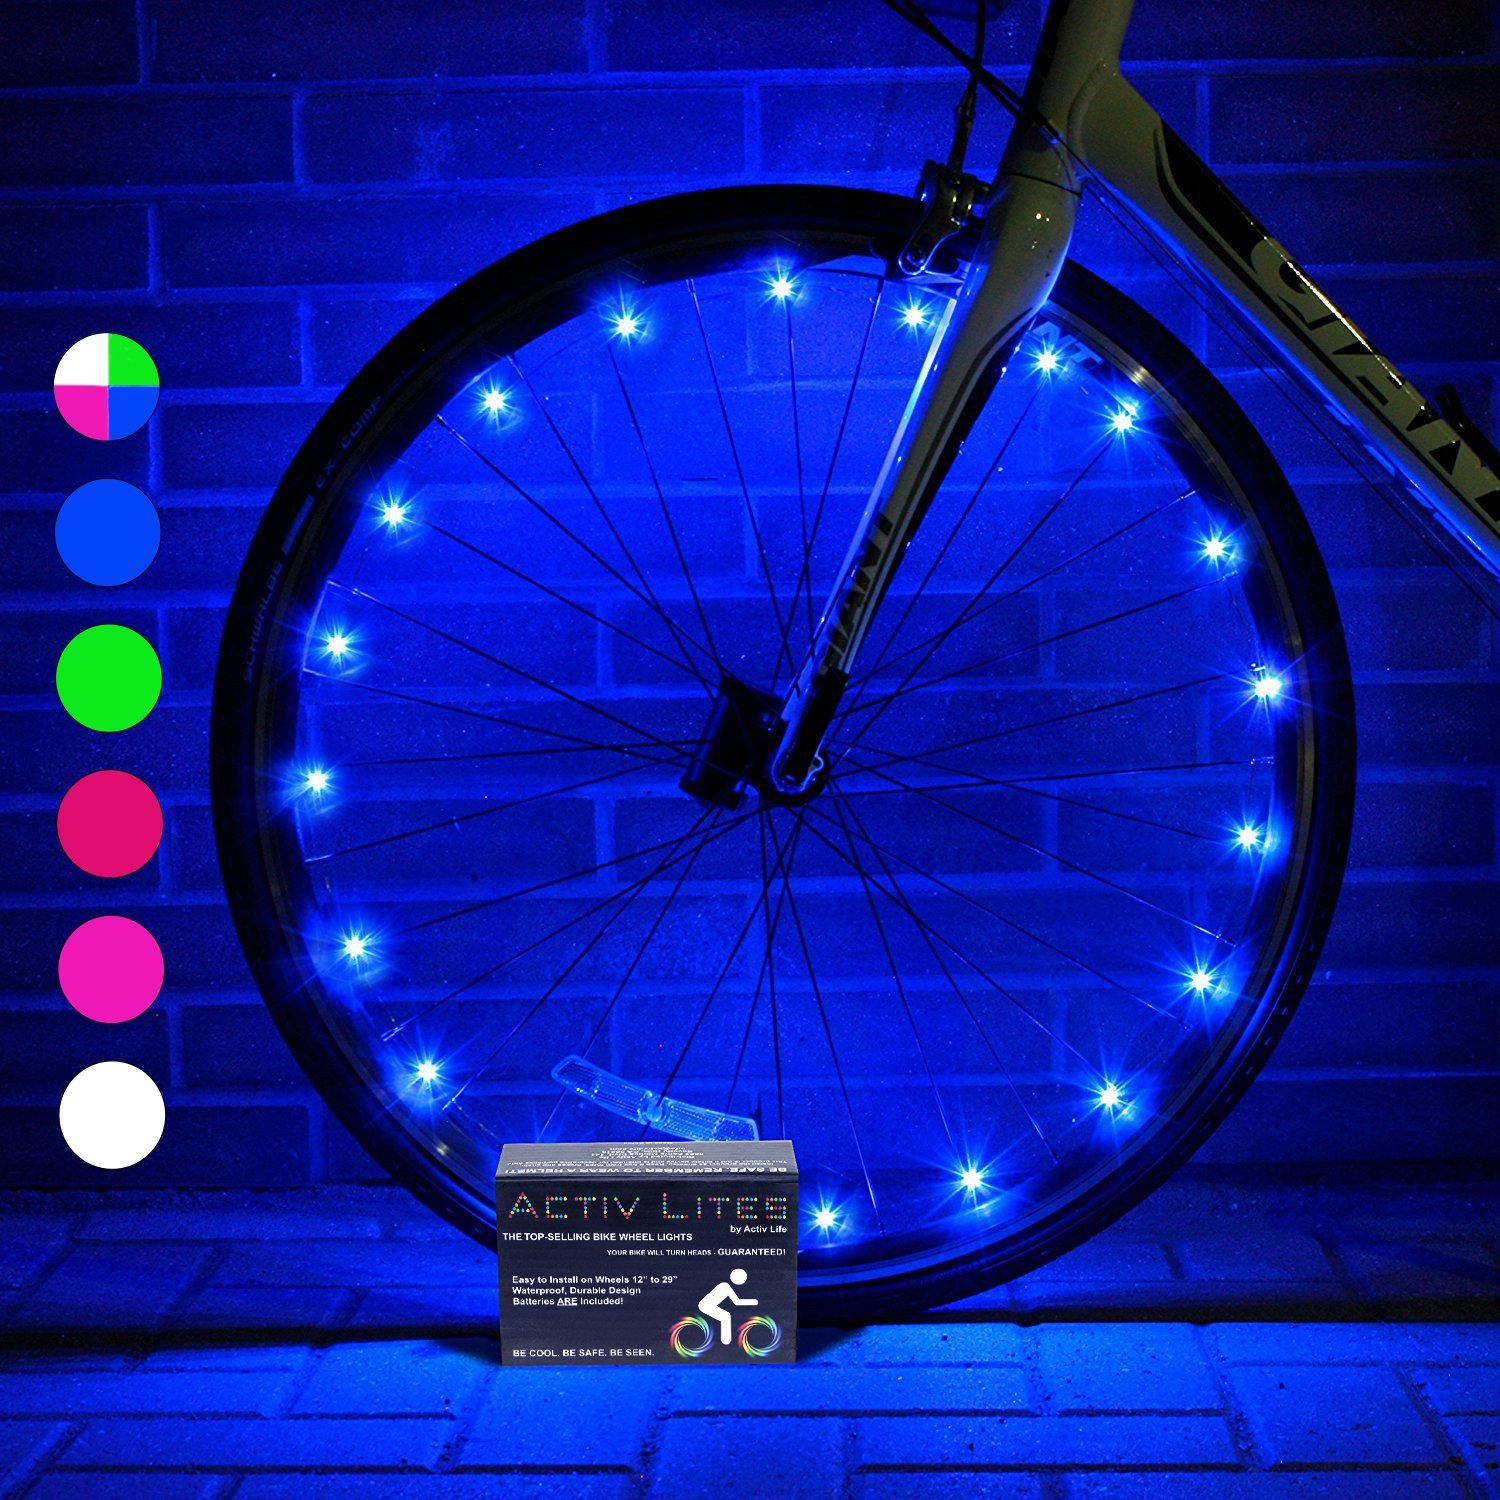 Activ Life Bike Wheel Lights 1 Tire Blue Best Christmas Cool Presents Stocking Stuffers Birthday Gifts